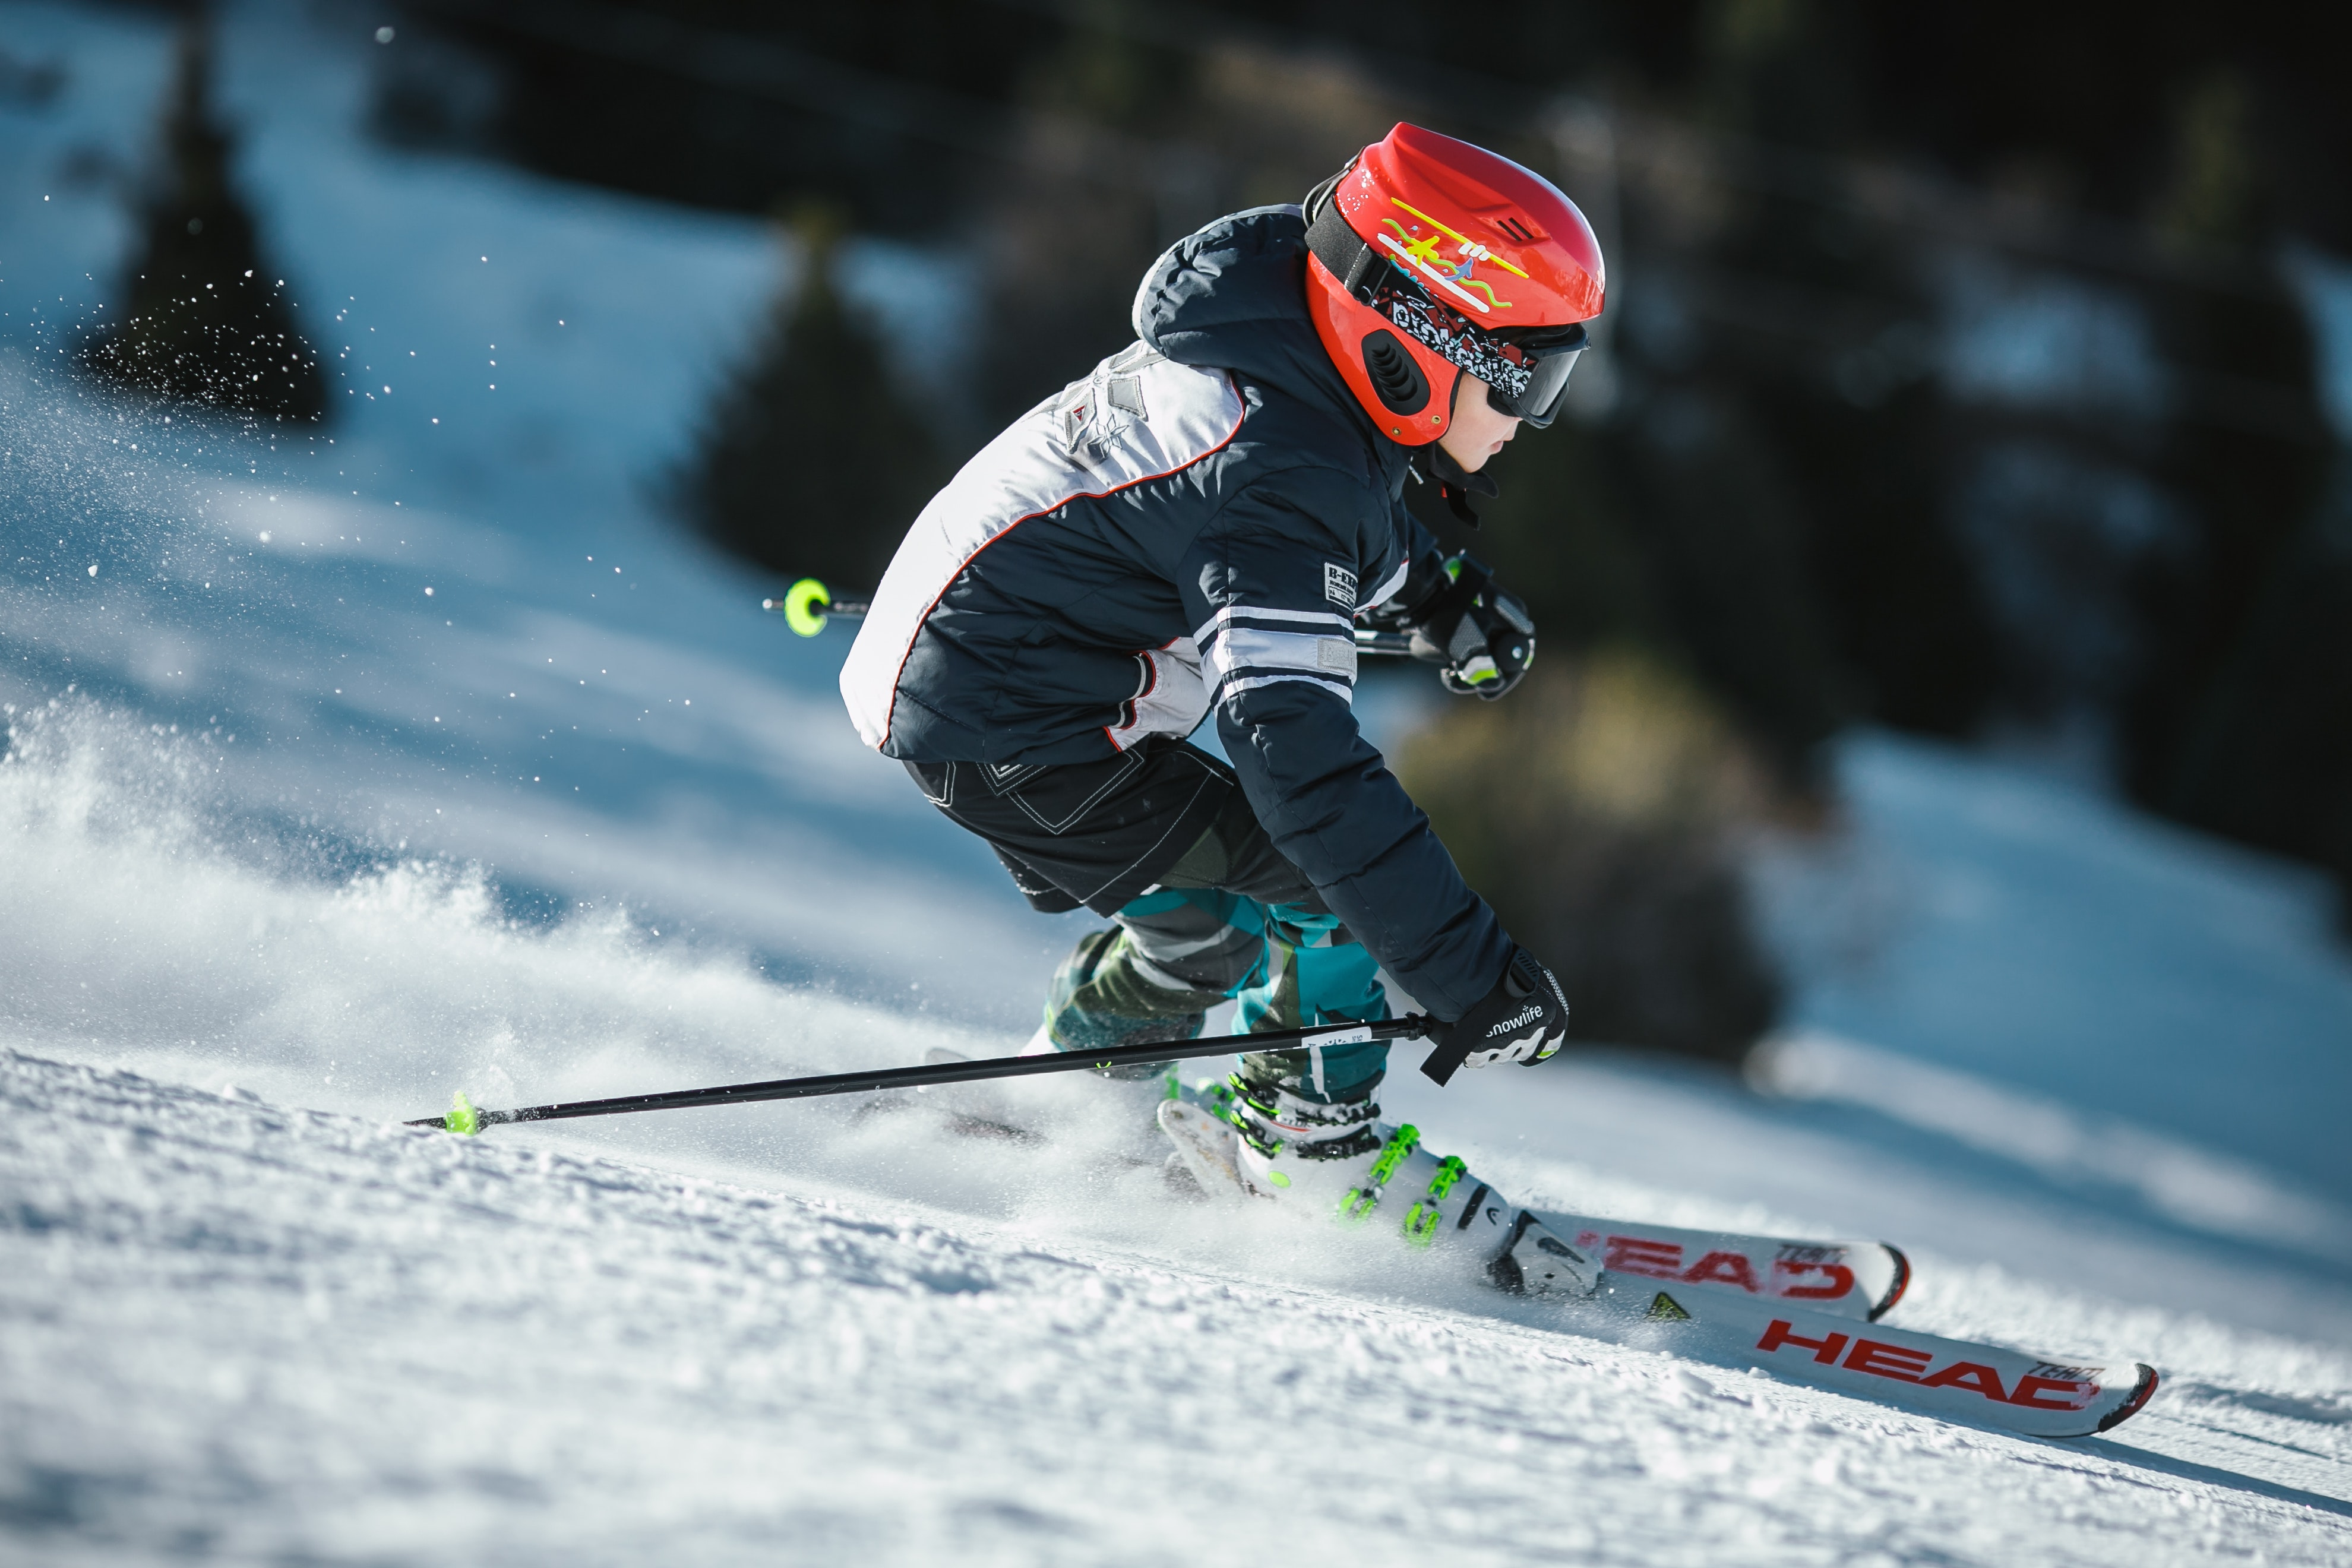 An in-depth review of the best ski bags available in 2019.